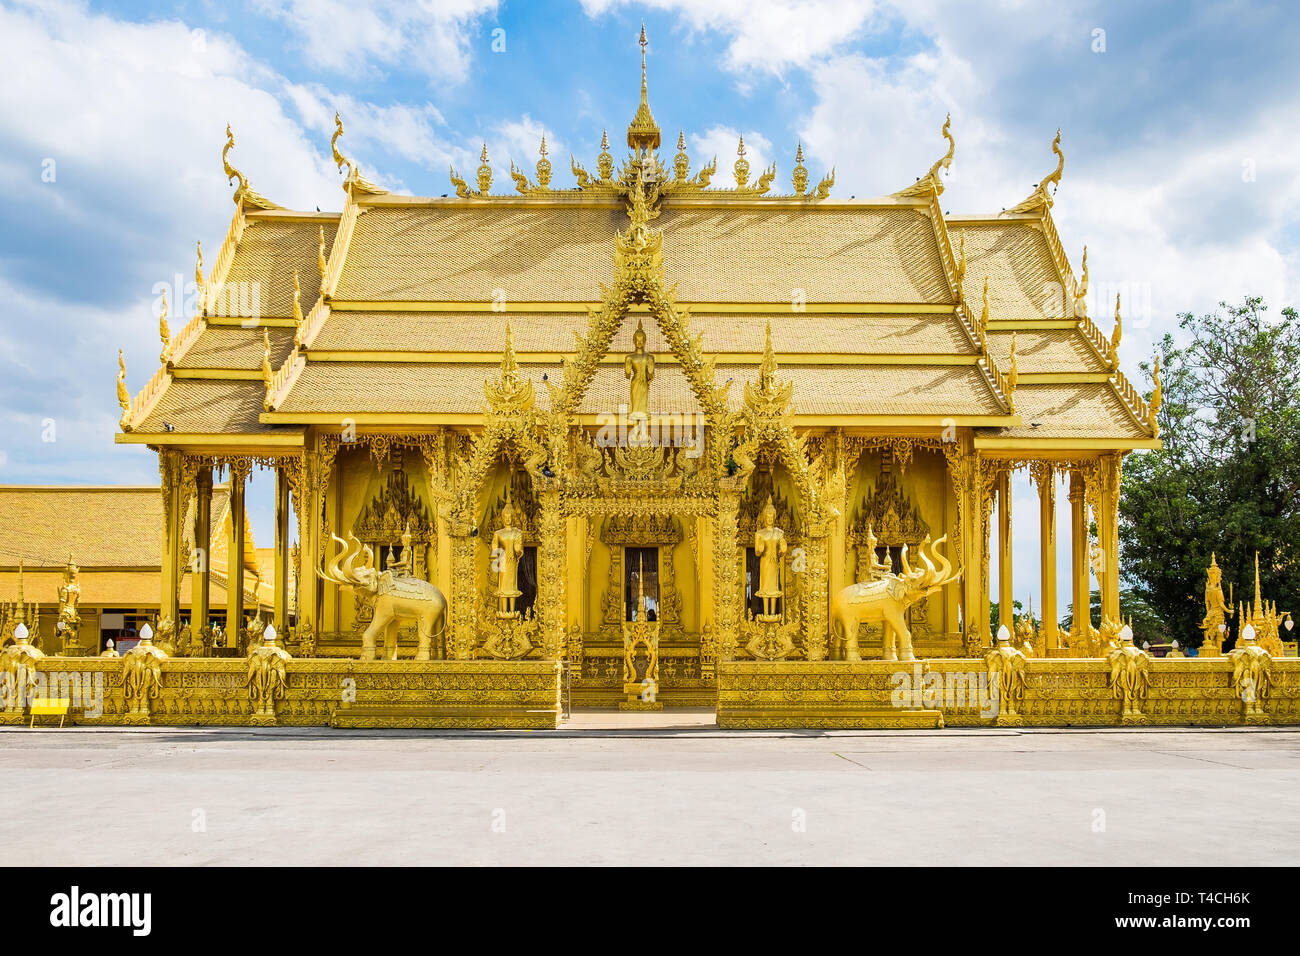 Architecture beautiful temple all gold color with blue sky at bangkla,wat paknam joelo,chachoengsao,thailand - Stock Image